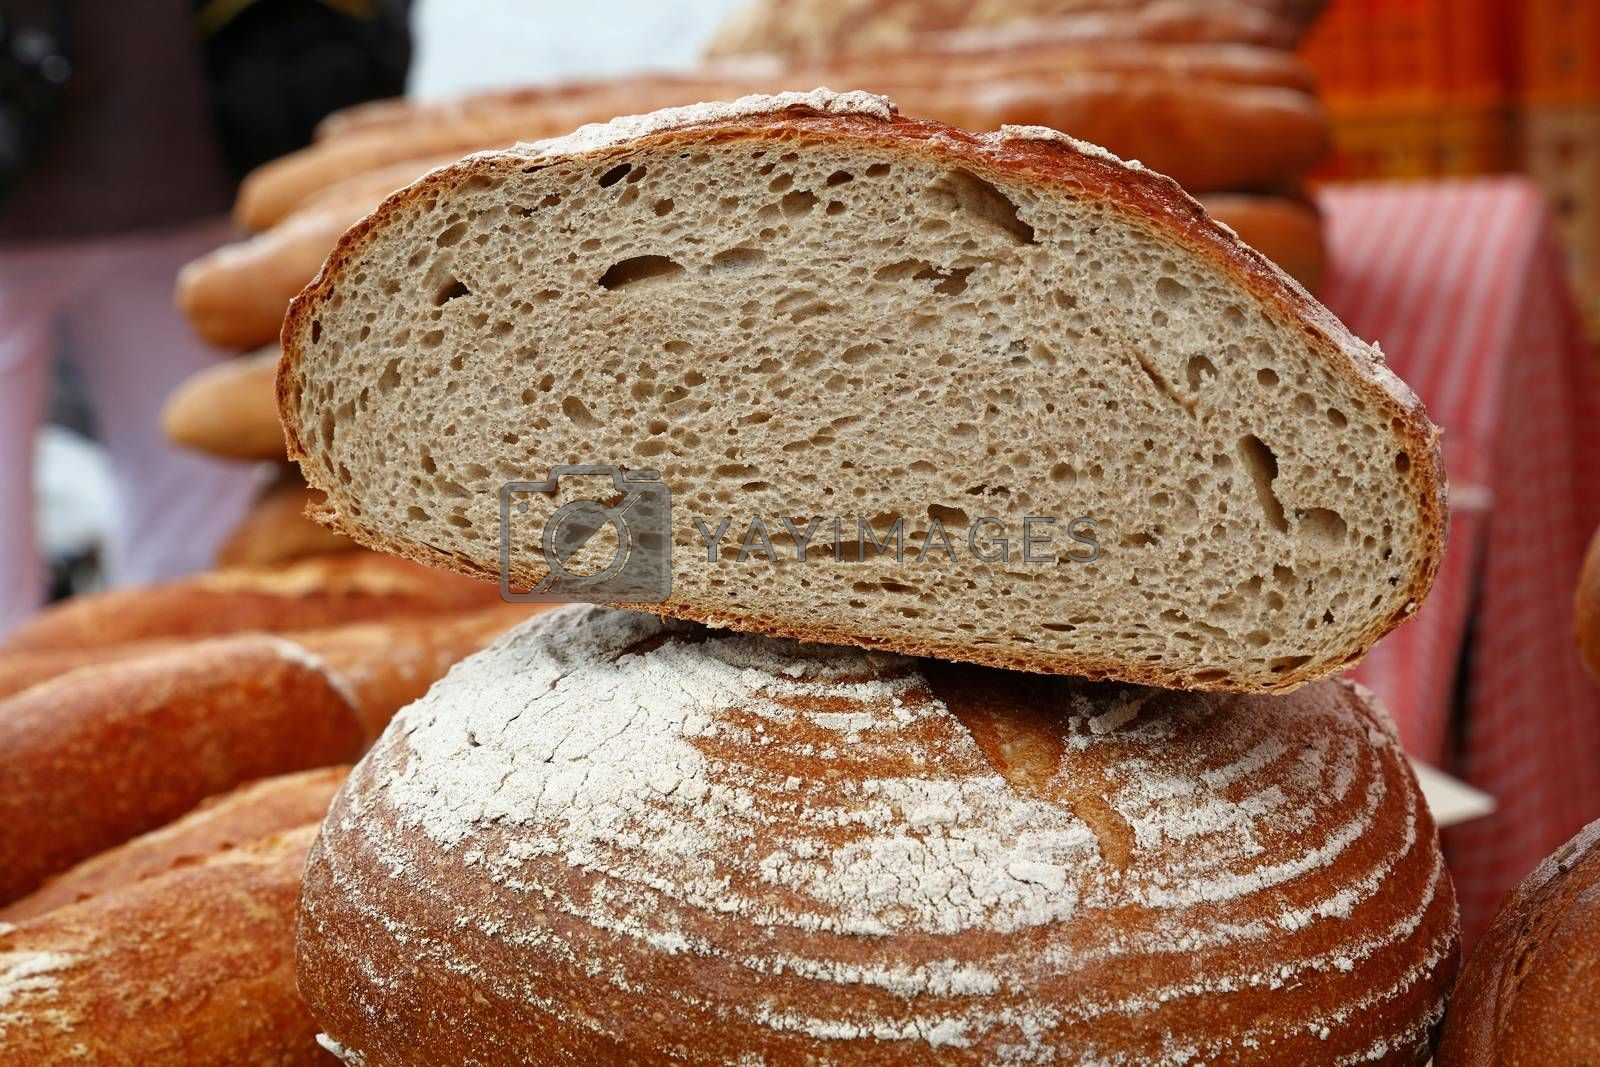 Close up selection of assorted fresh bread loaves on retail display of bakery store, low angle view